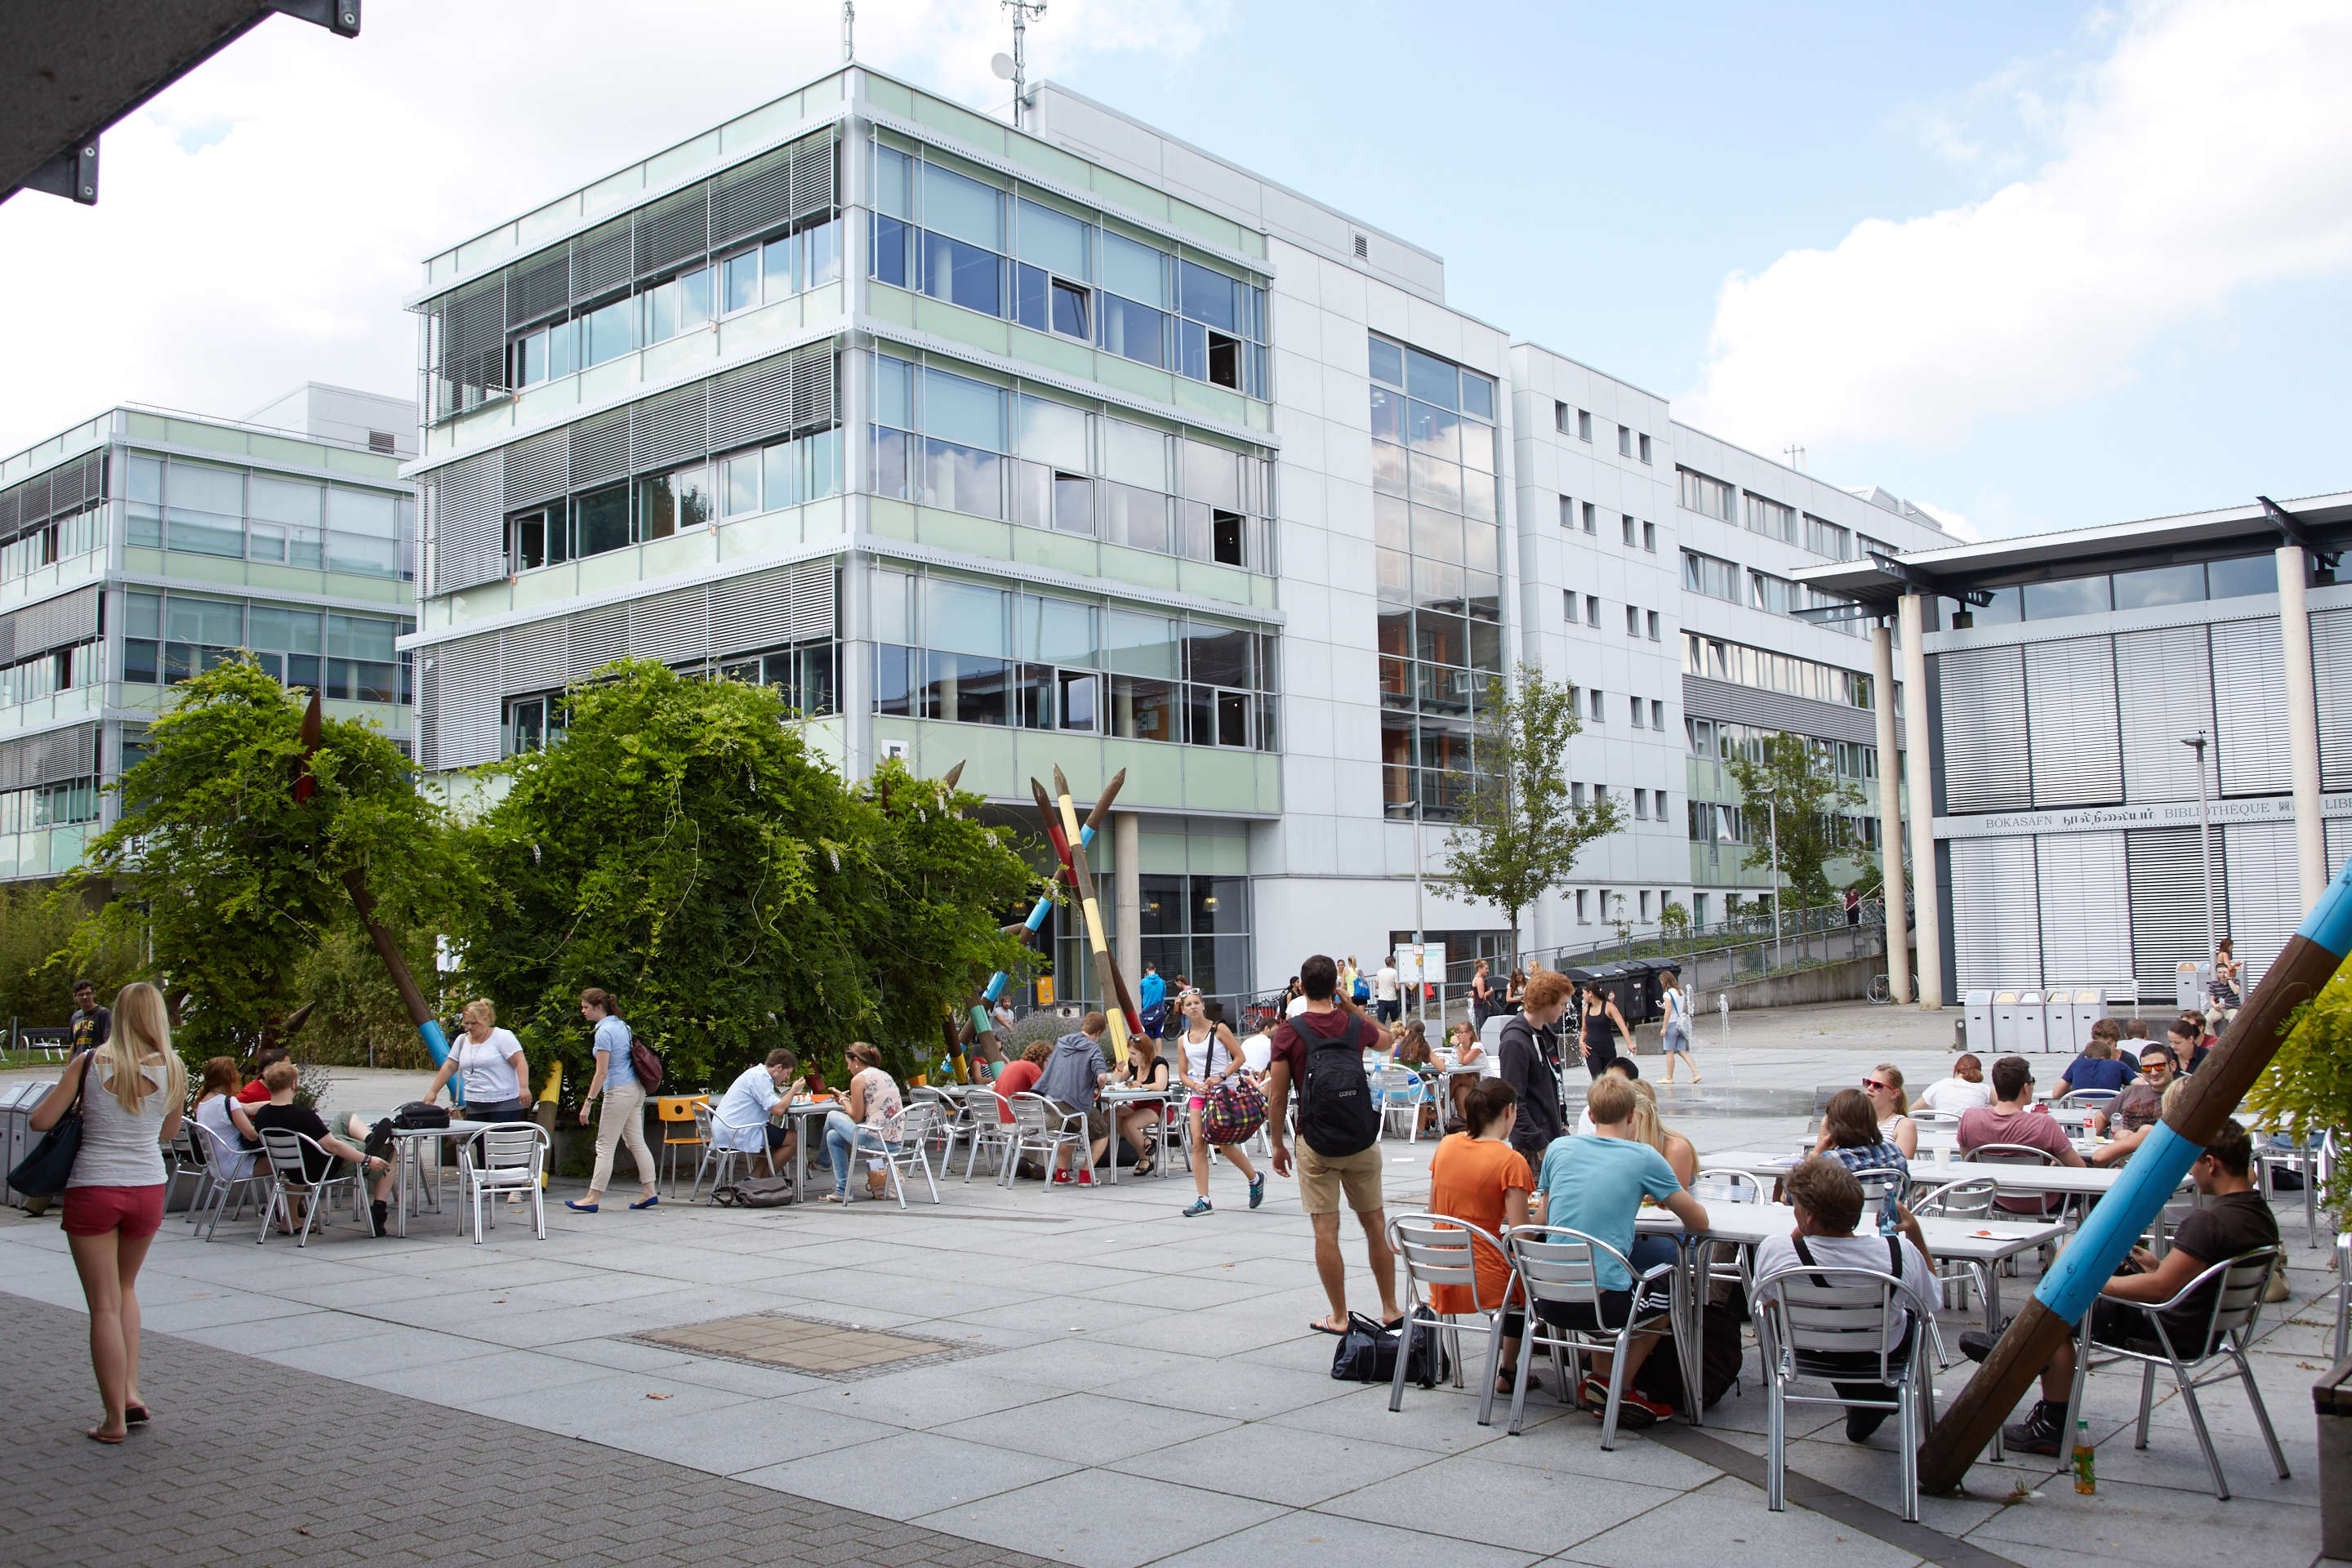 A picture of the University of Koblenz-Landau, Germany